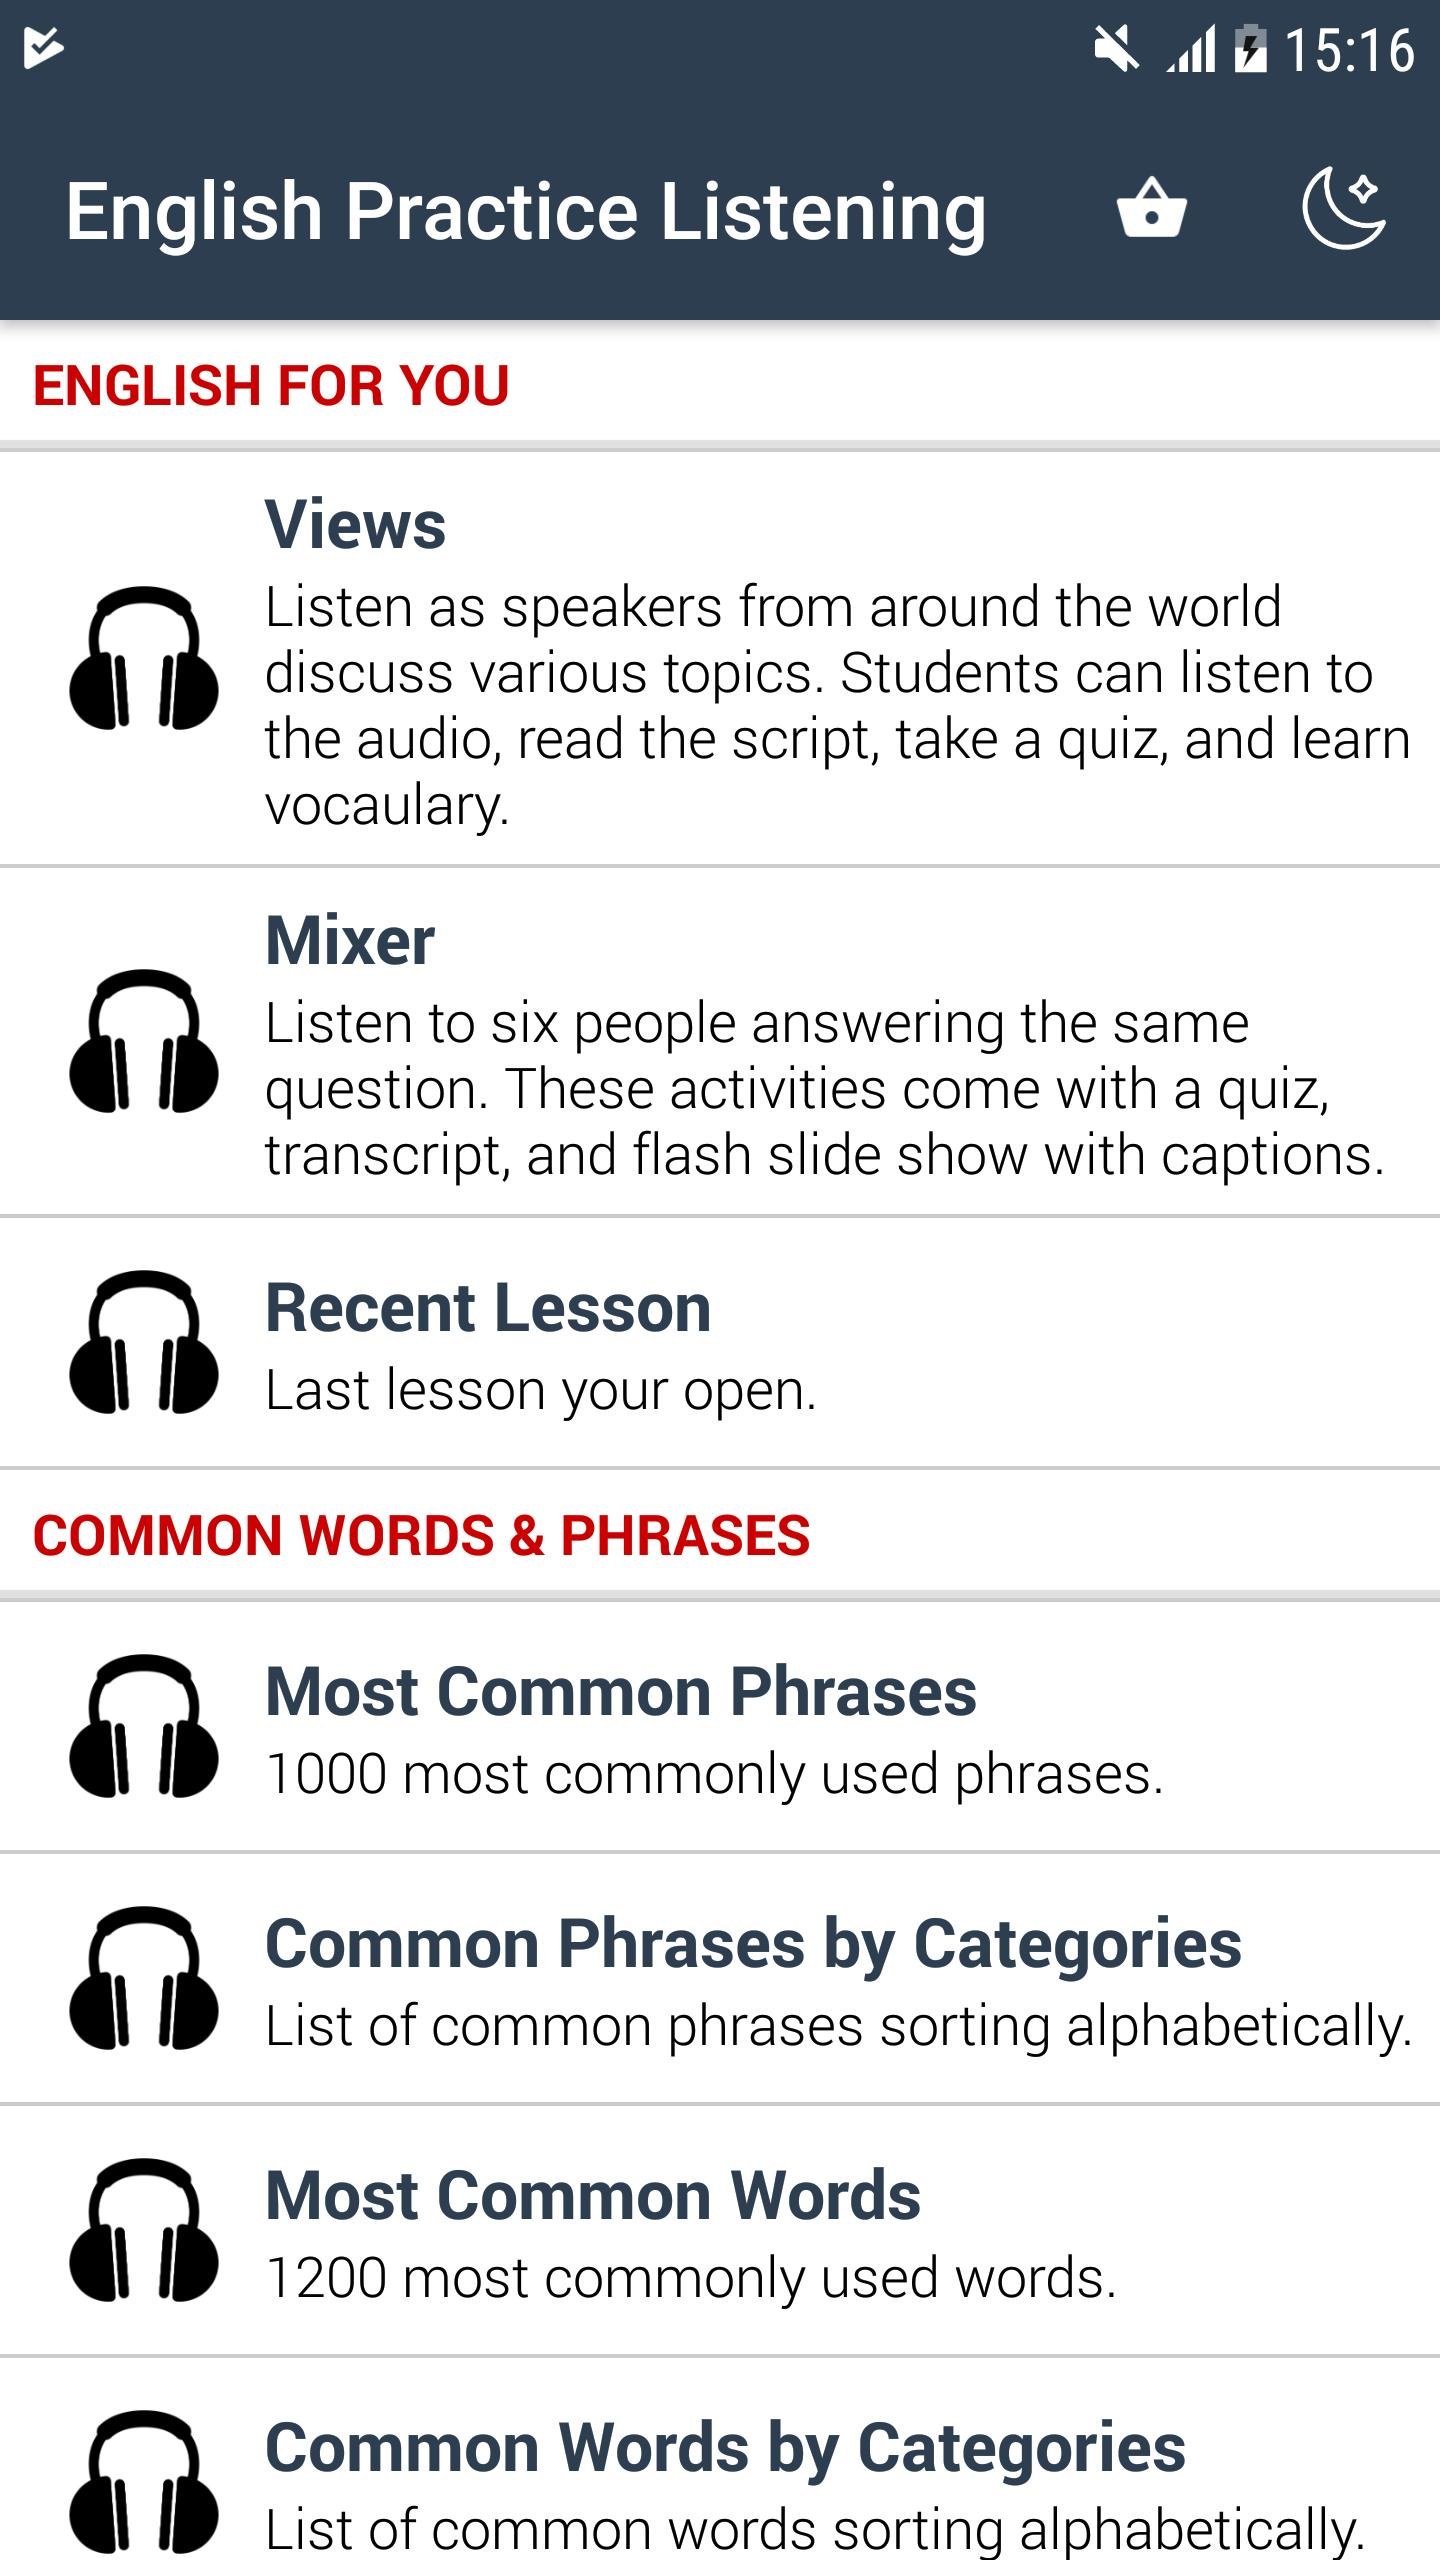 English Listening Practice for Android - APK Download